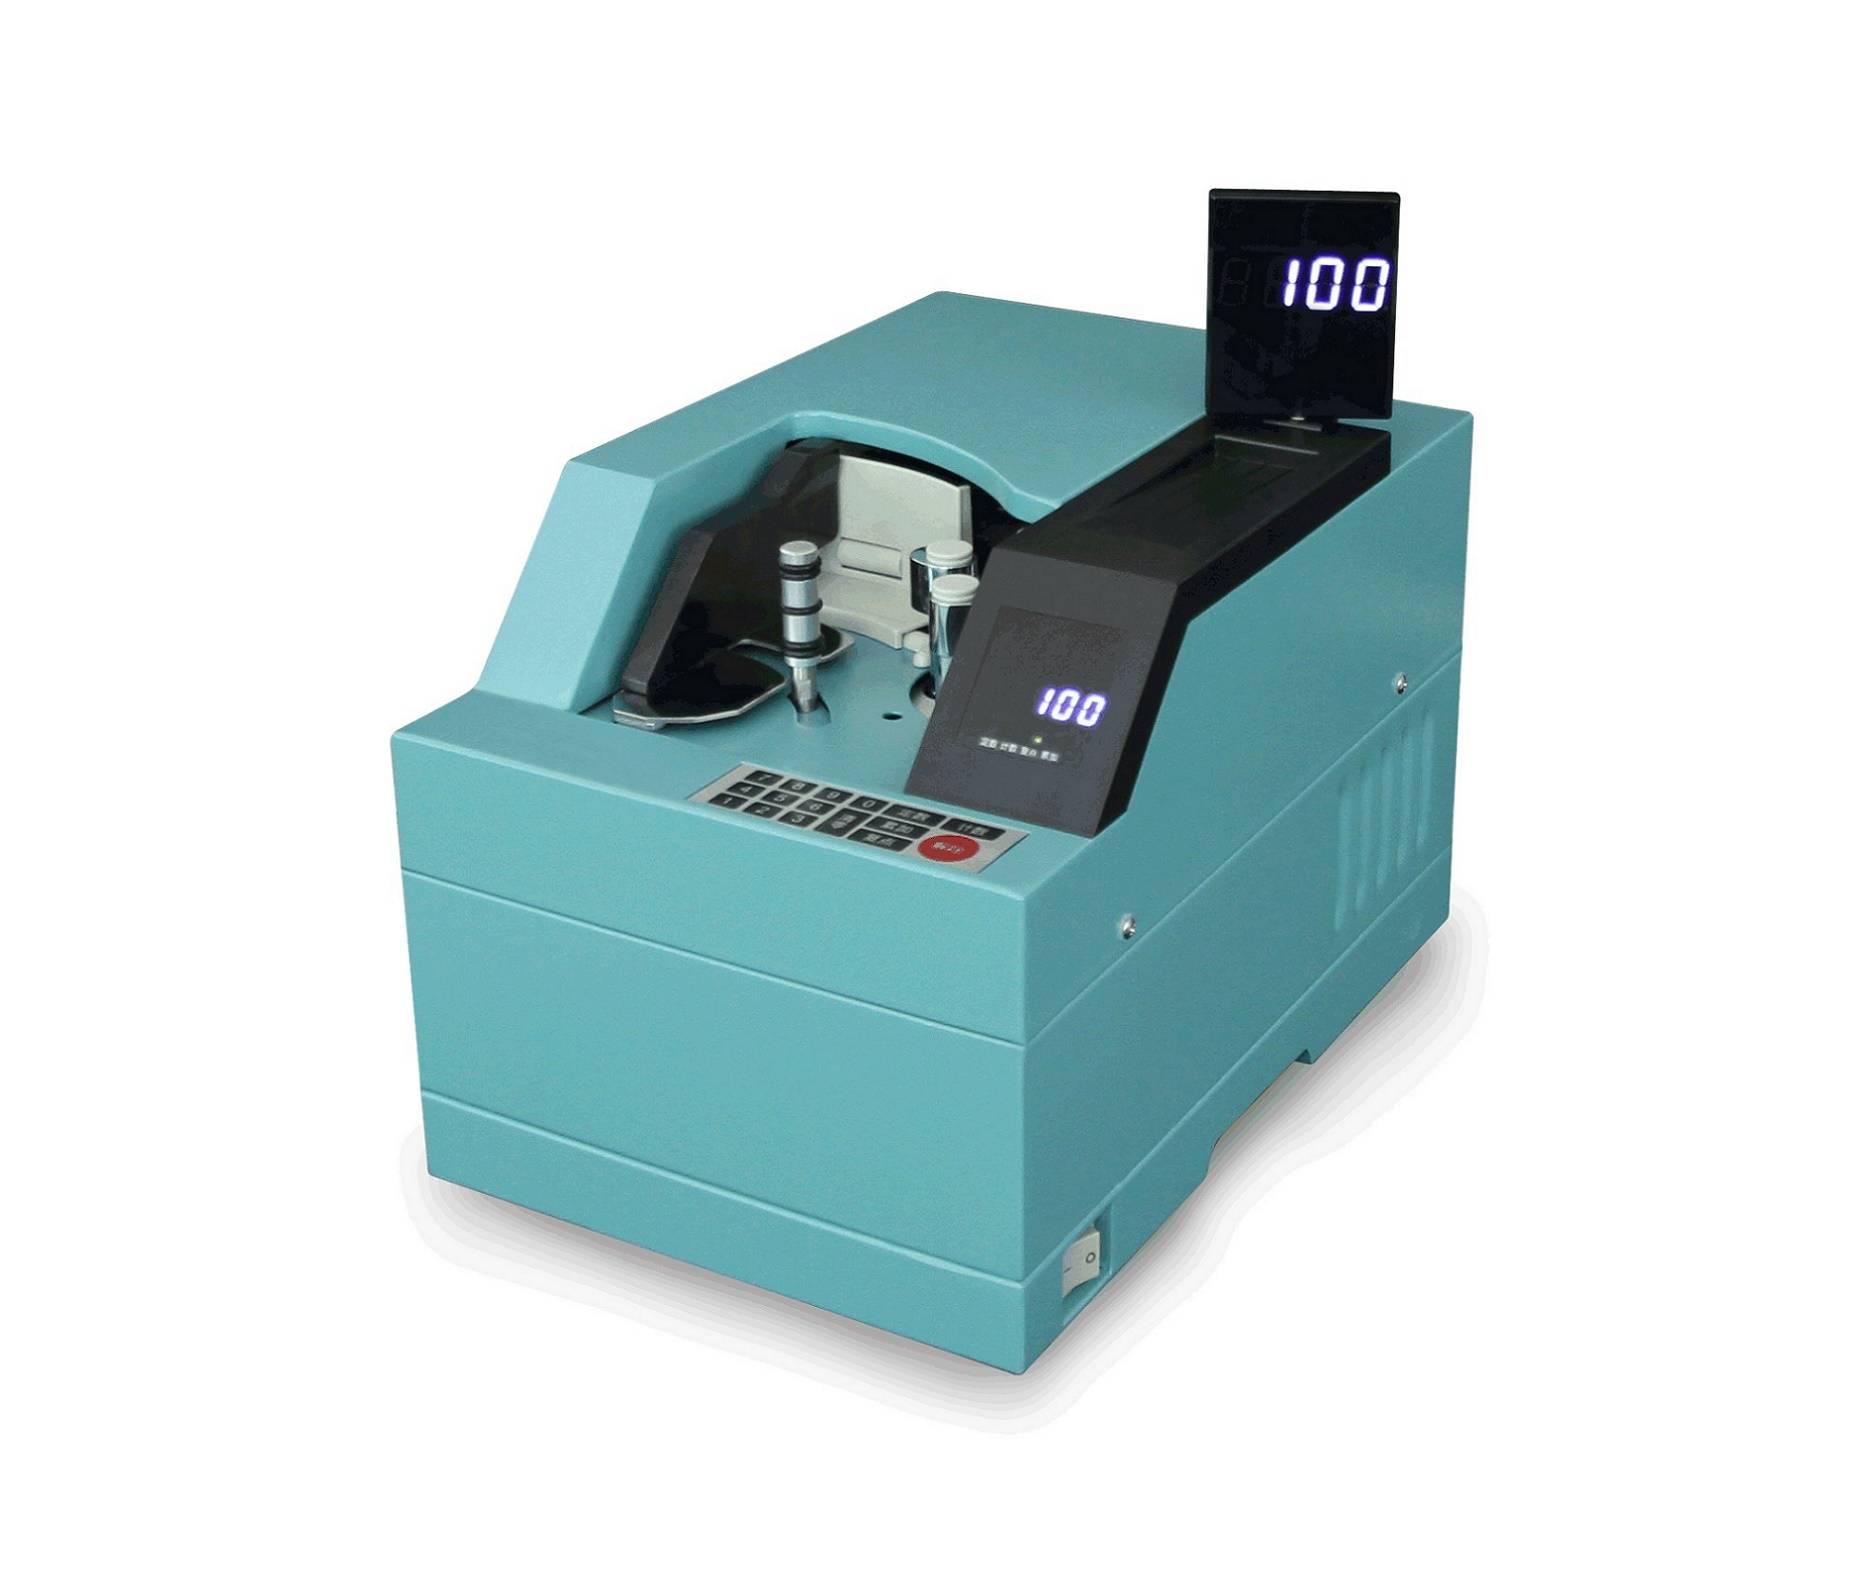 FDJ-100A Vacuum Money Counter with Semi-Automatic Dust Cover and UV